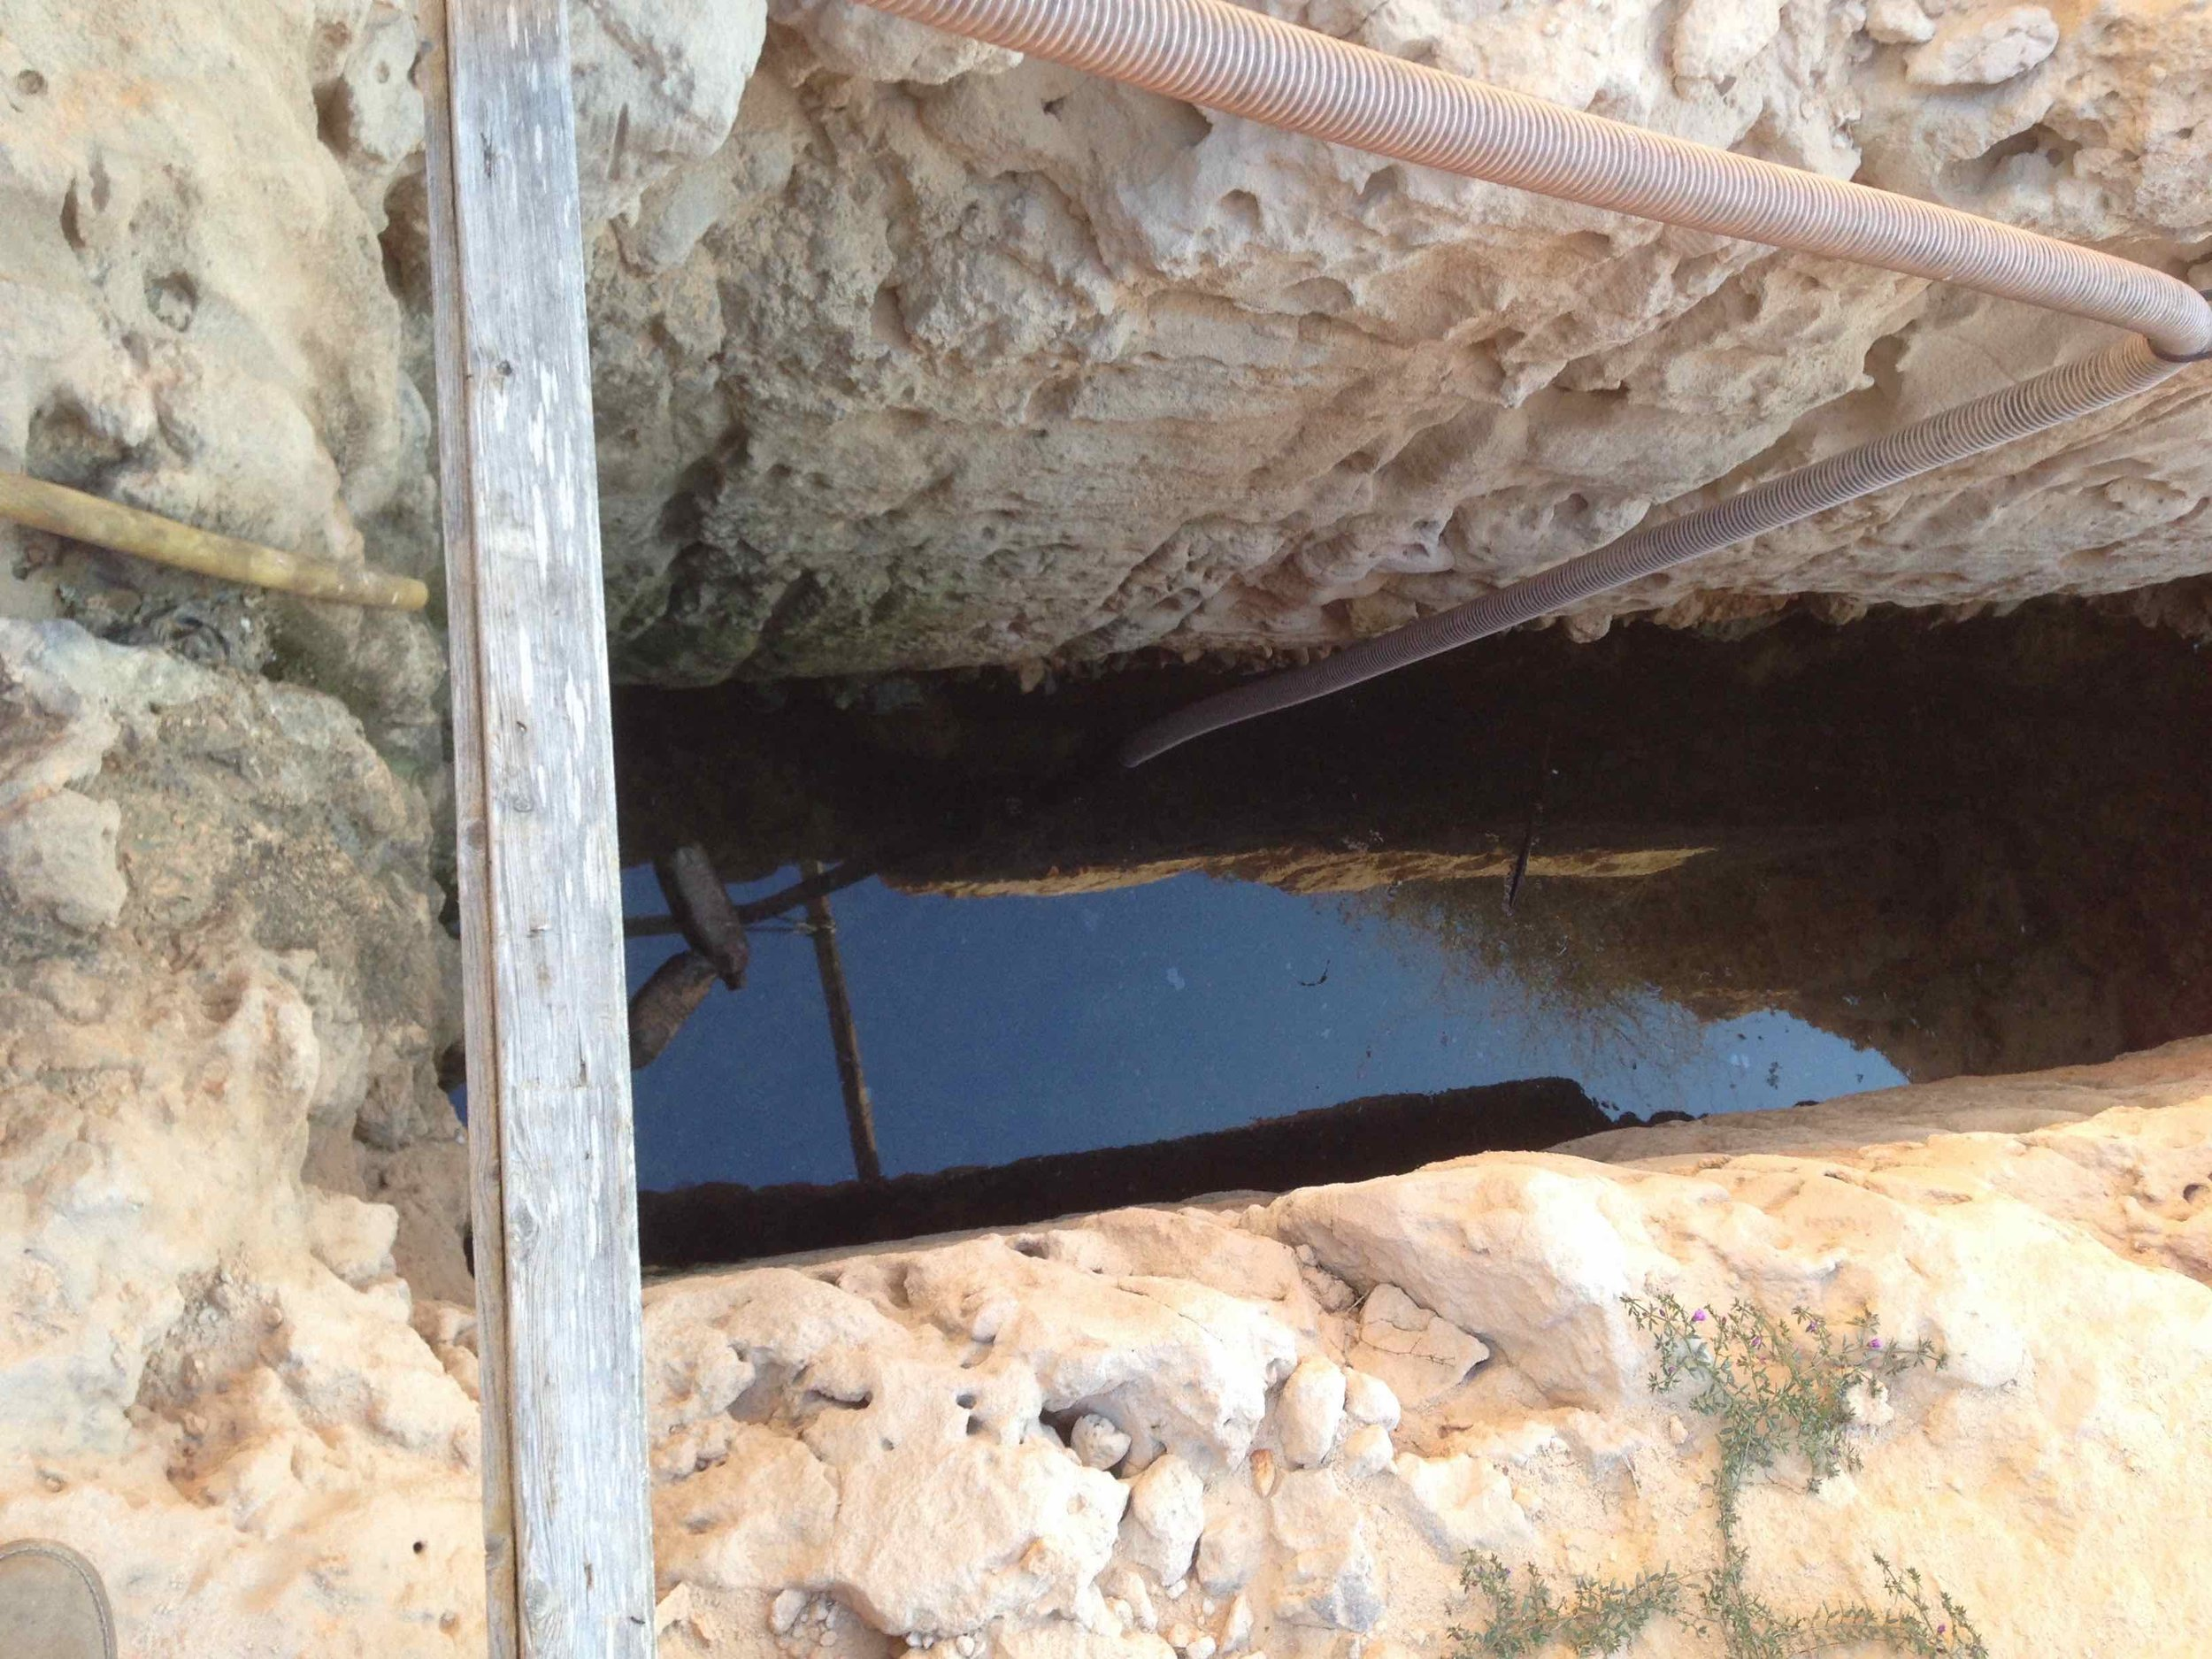 New cisterns for water collection